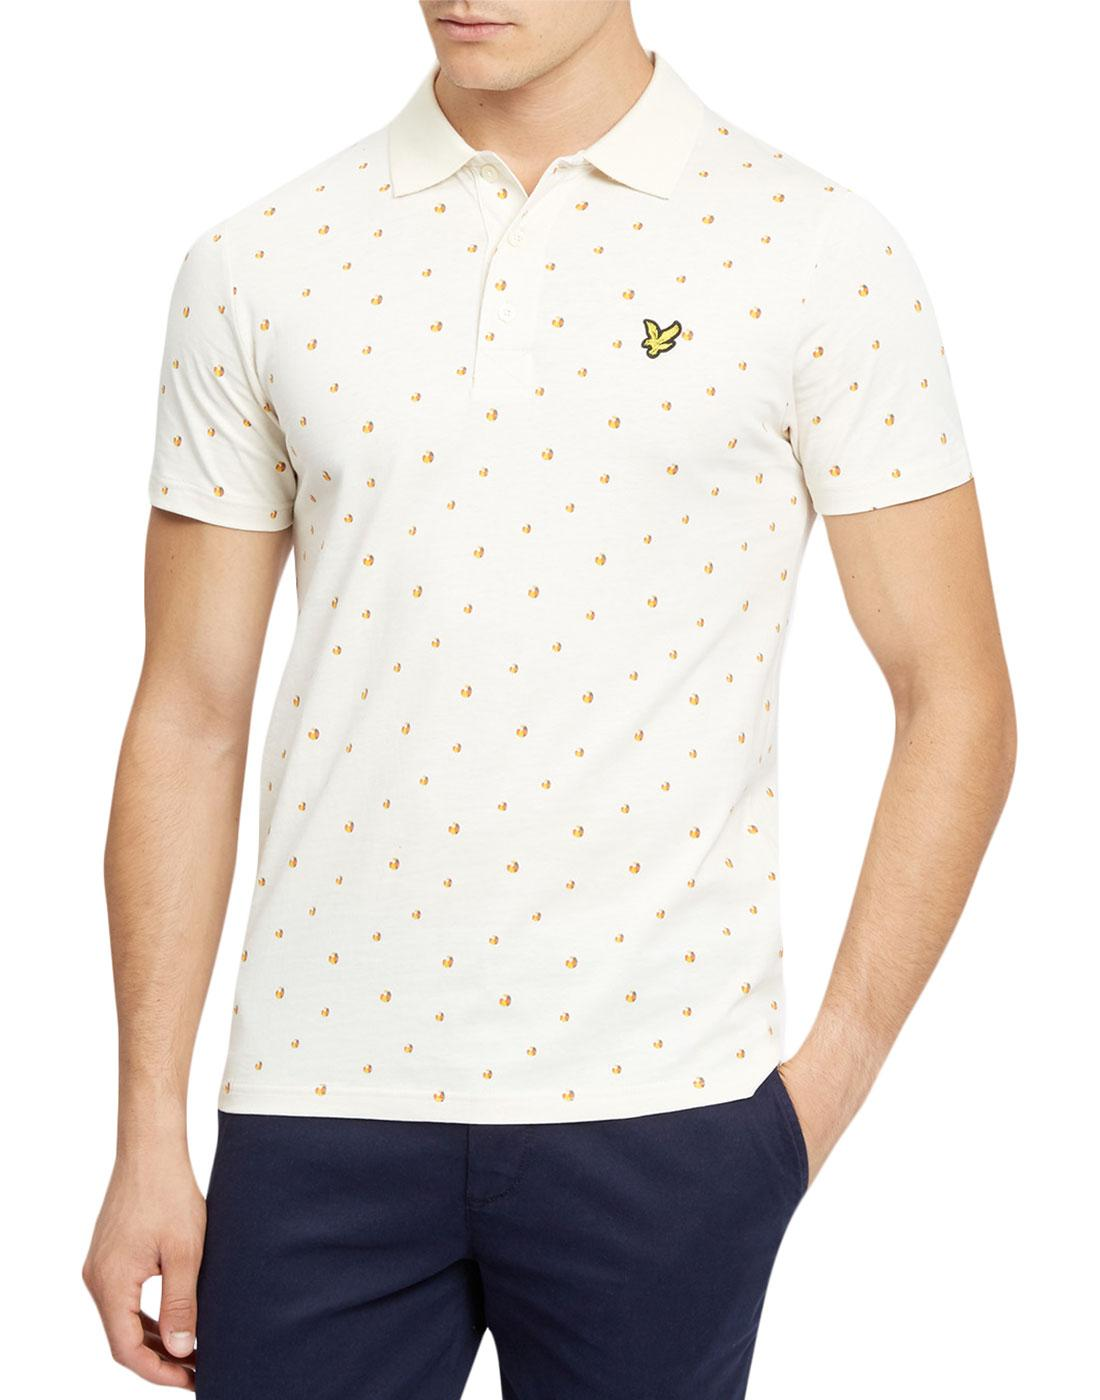 LYLE & SCOTT Retro 70s Beach Ball Print Polo Shirt